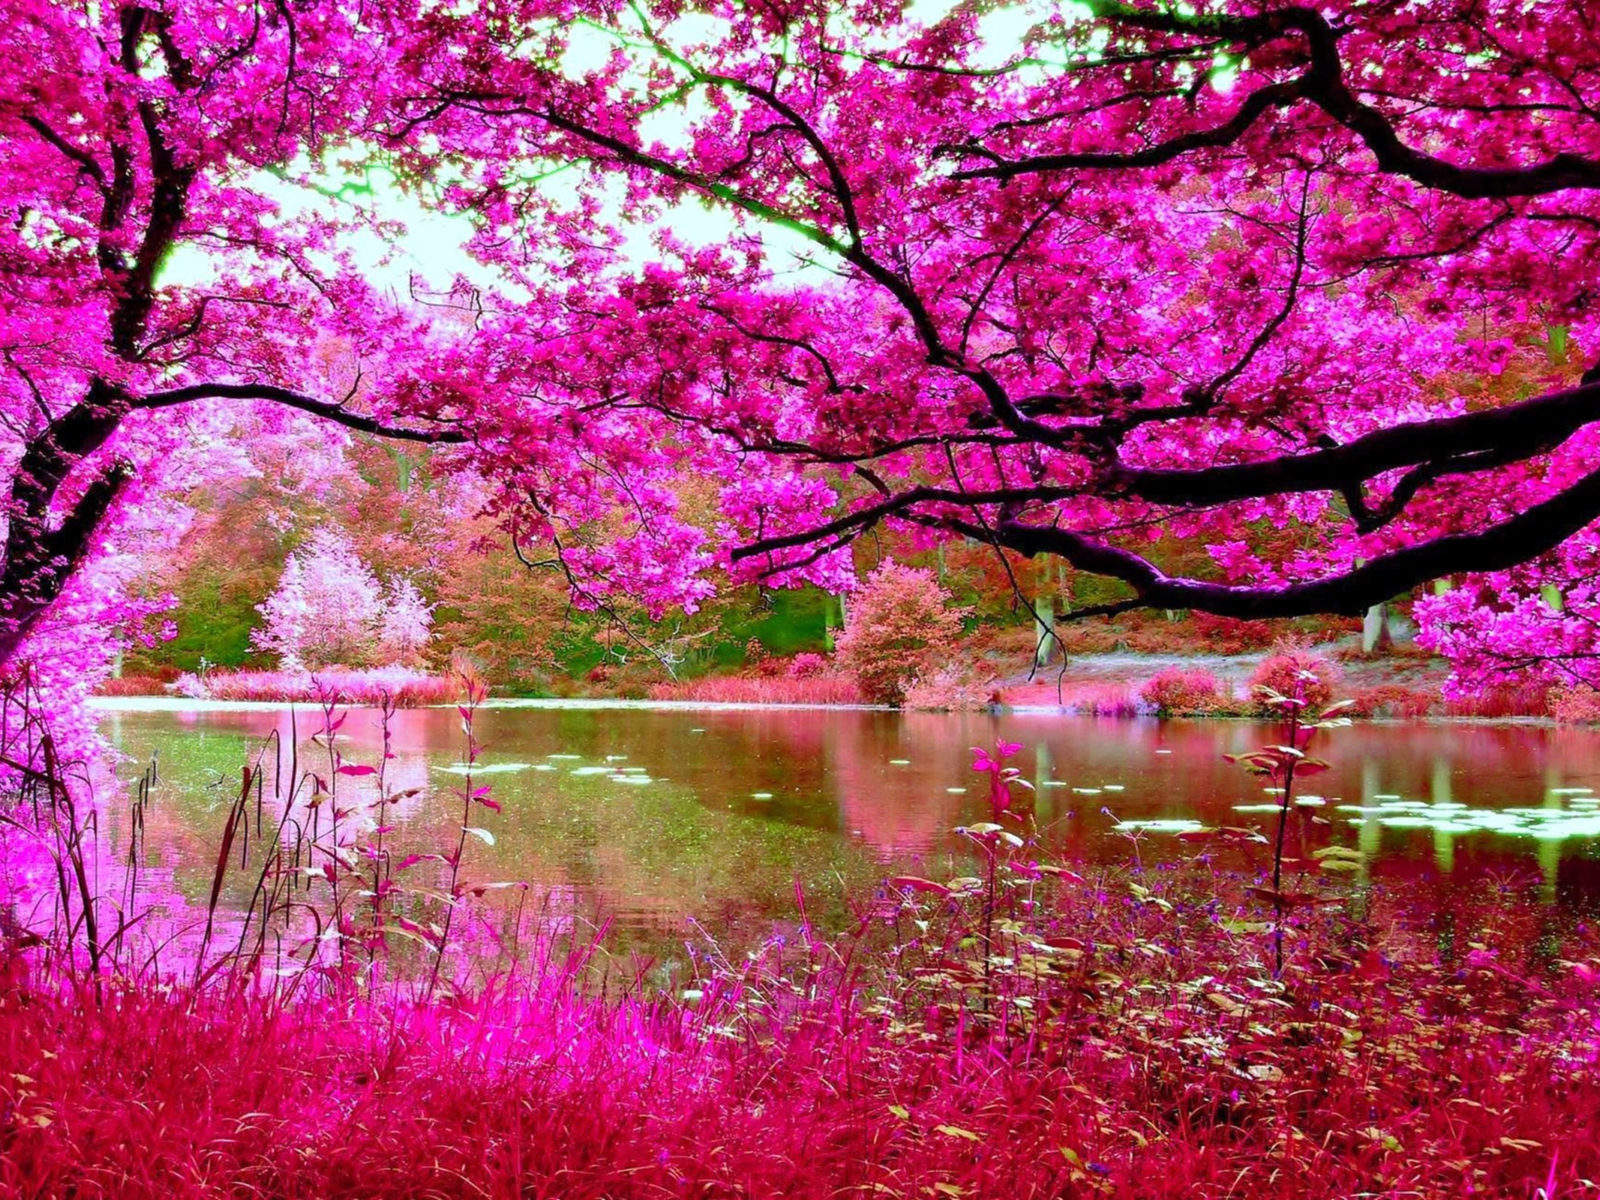 Fall Pictures For Wallpaper Free Cherry Blossoms Spring Pink Cherry Tree River Nature Hd